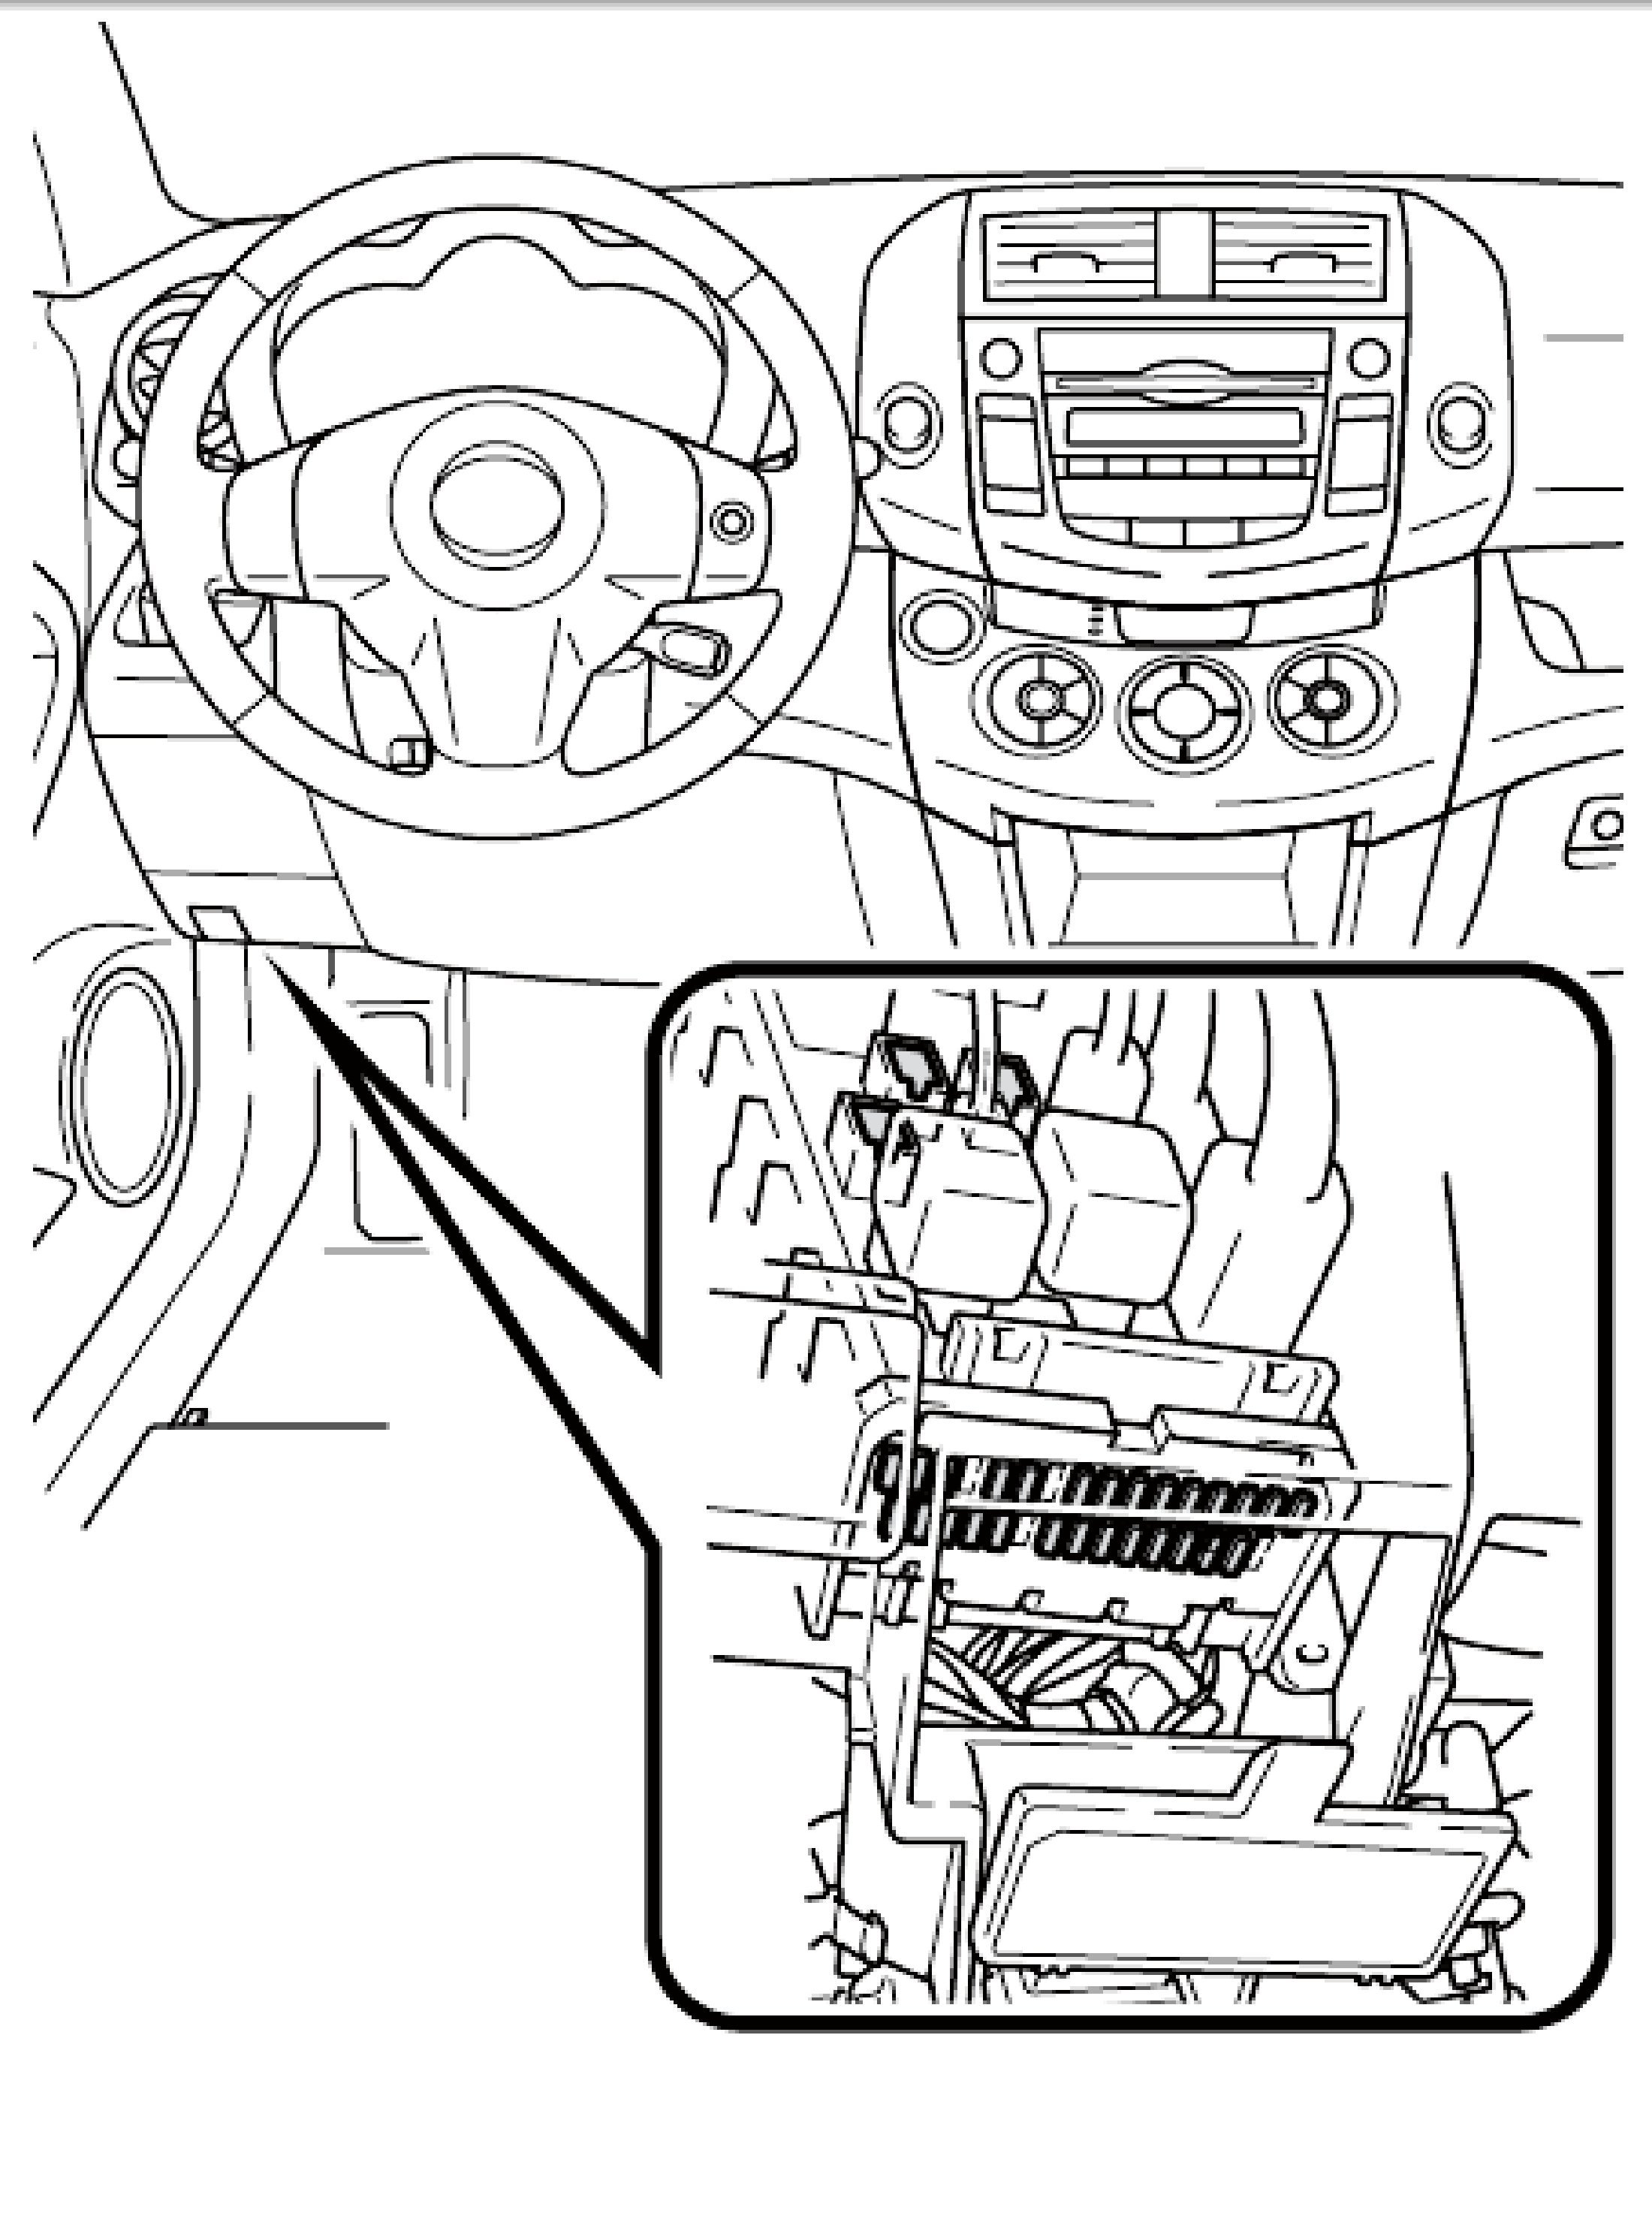 Corolla Fuse Box Wiring Library Diagram Ford Ka Toyota